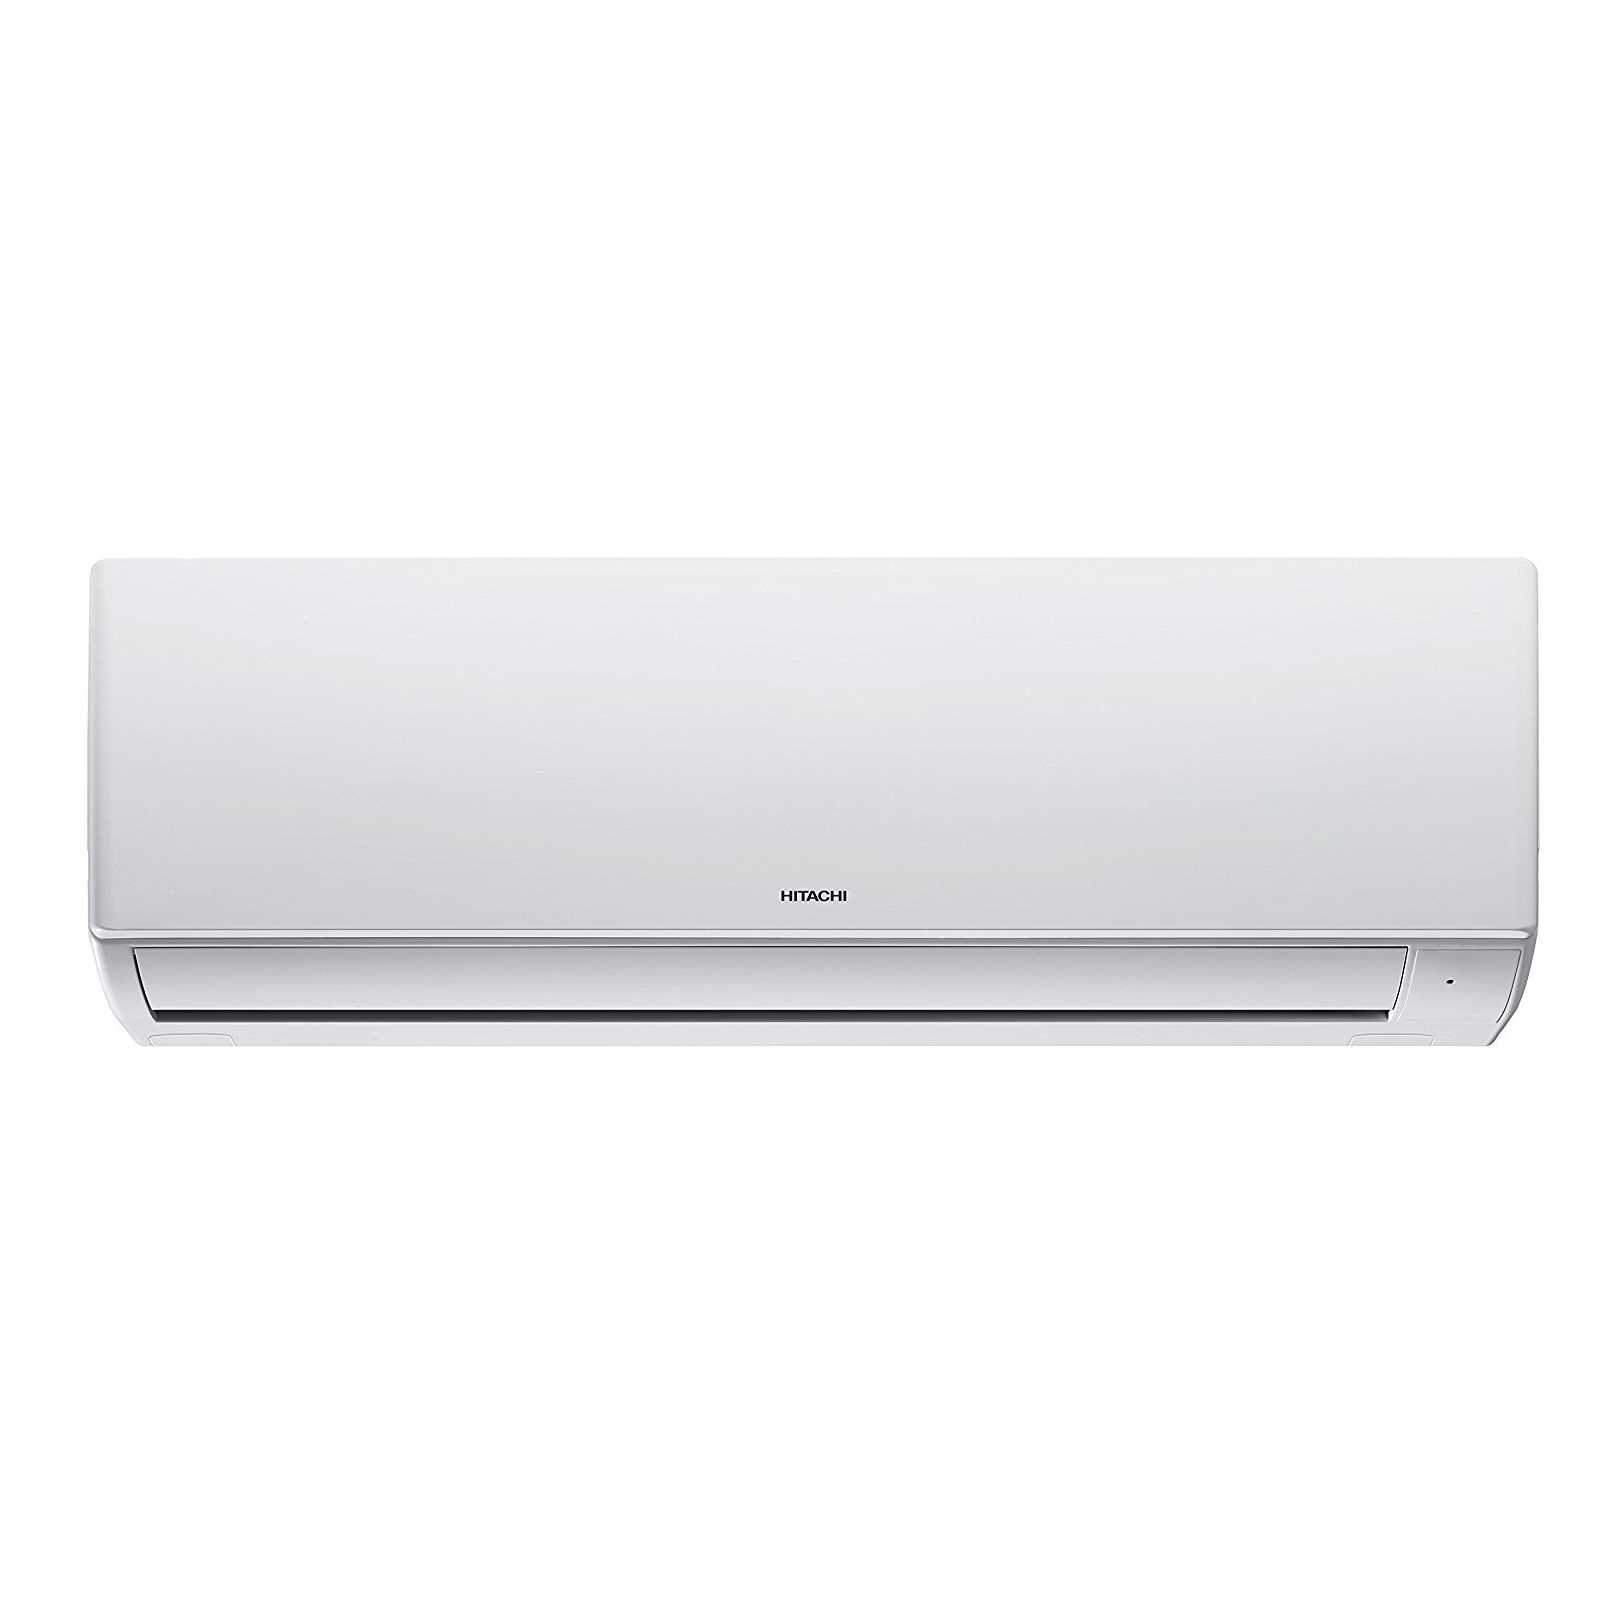 Hitachi Merai 3100X RSD318HBEA 1.5 Ton 3 Star Inverter Split AC